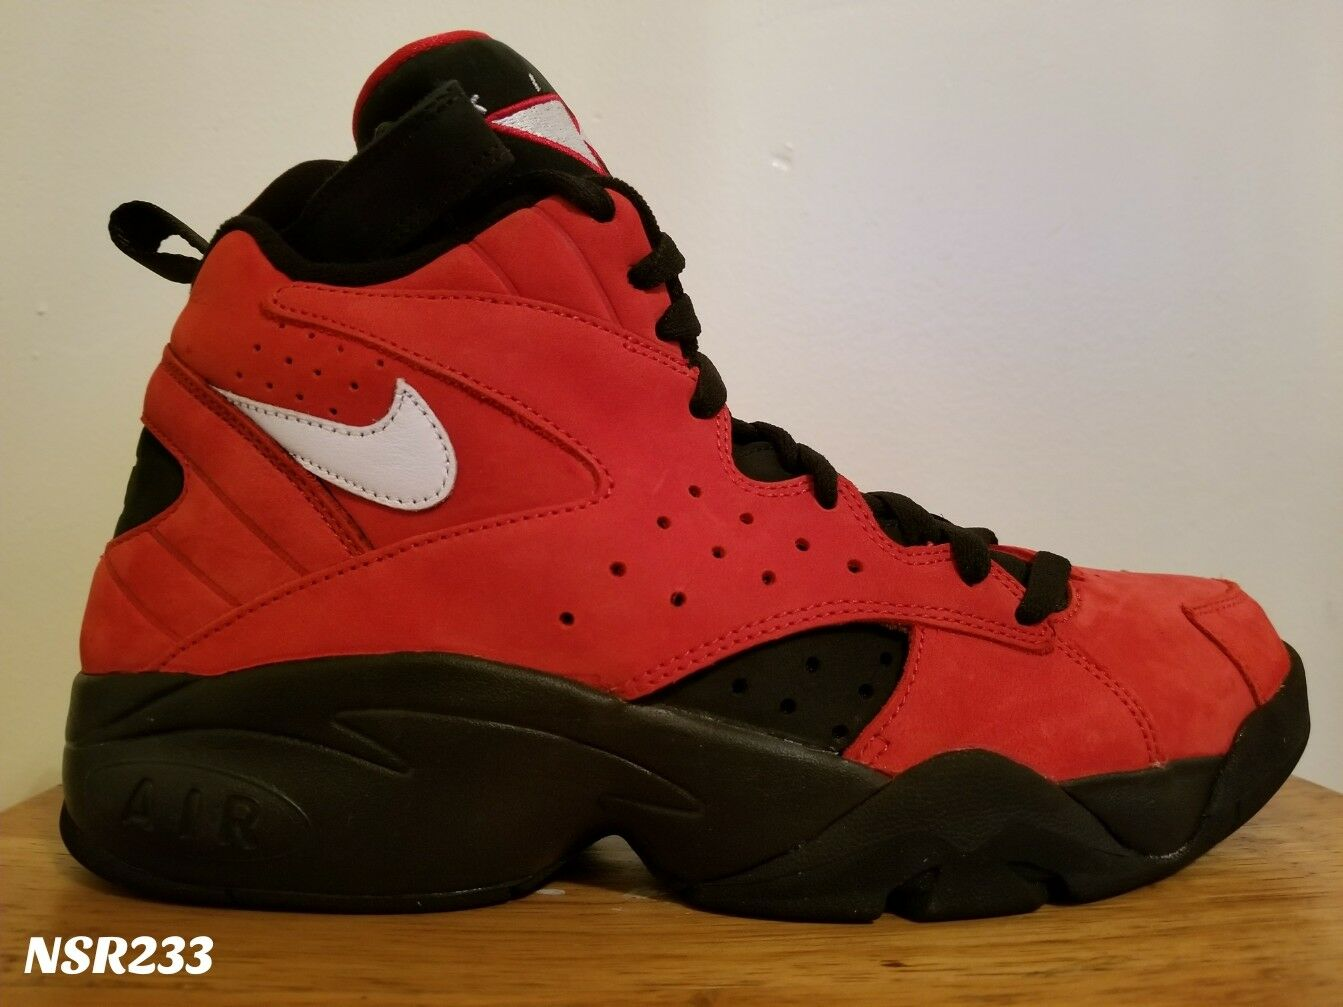 KITH X NIKE AIR MAESTRO II HIGH RED PIPPEN NKAH1069 600 Price reduction best-selling model of the brand